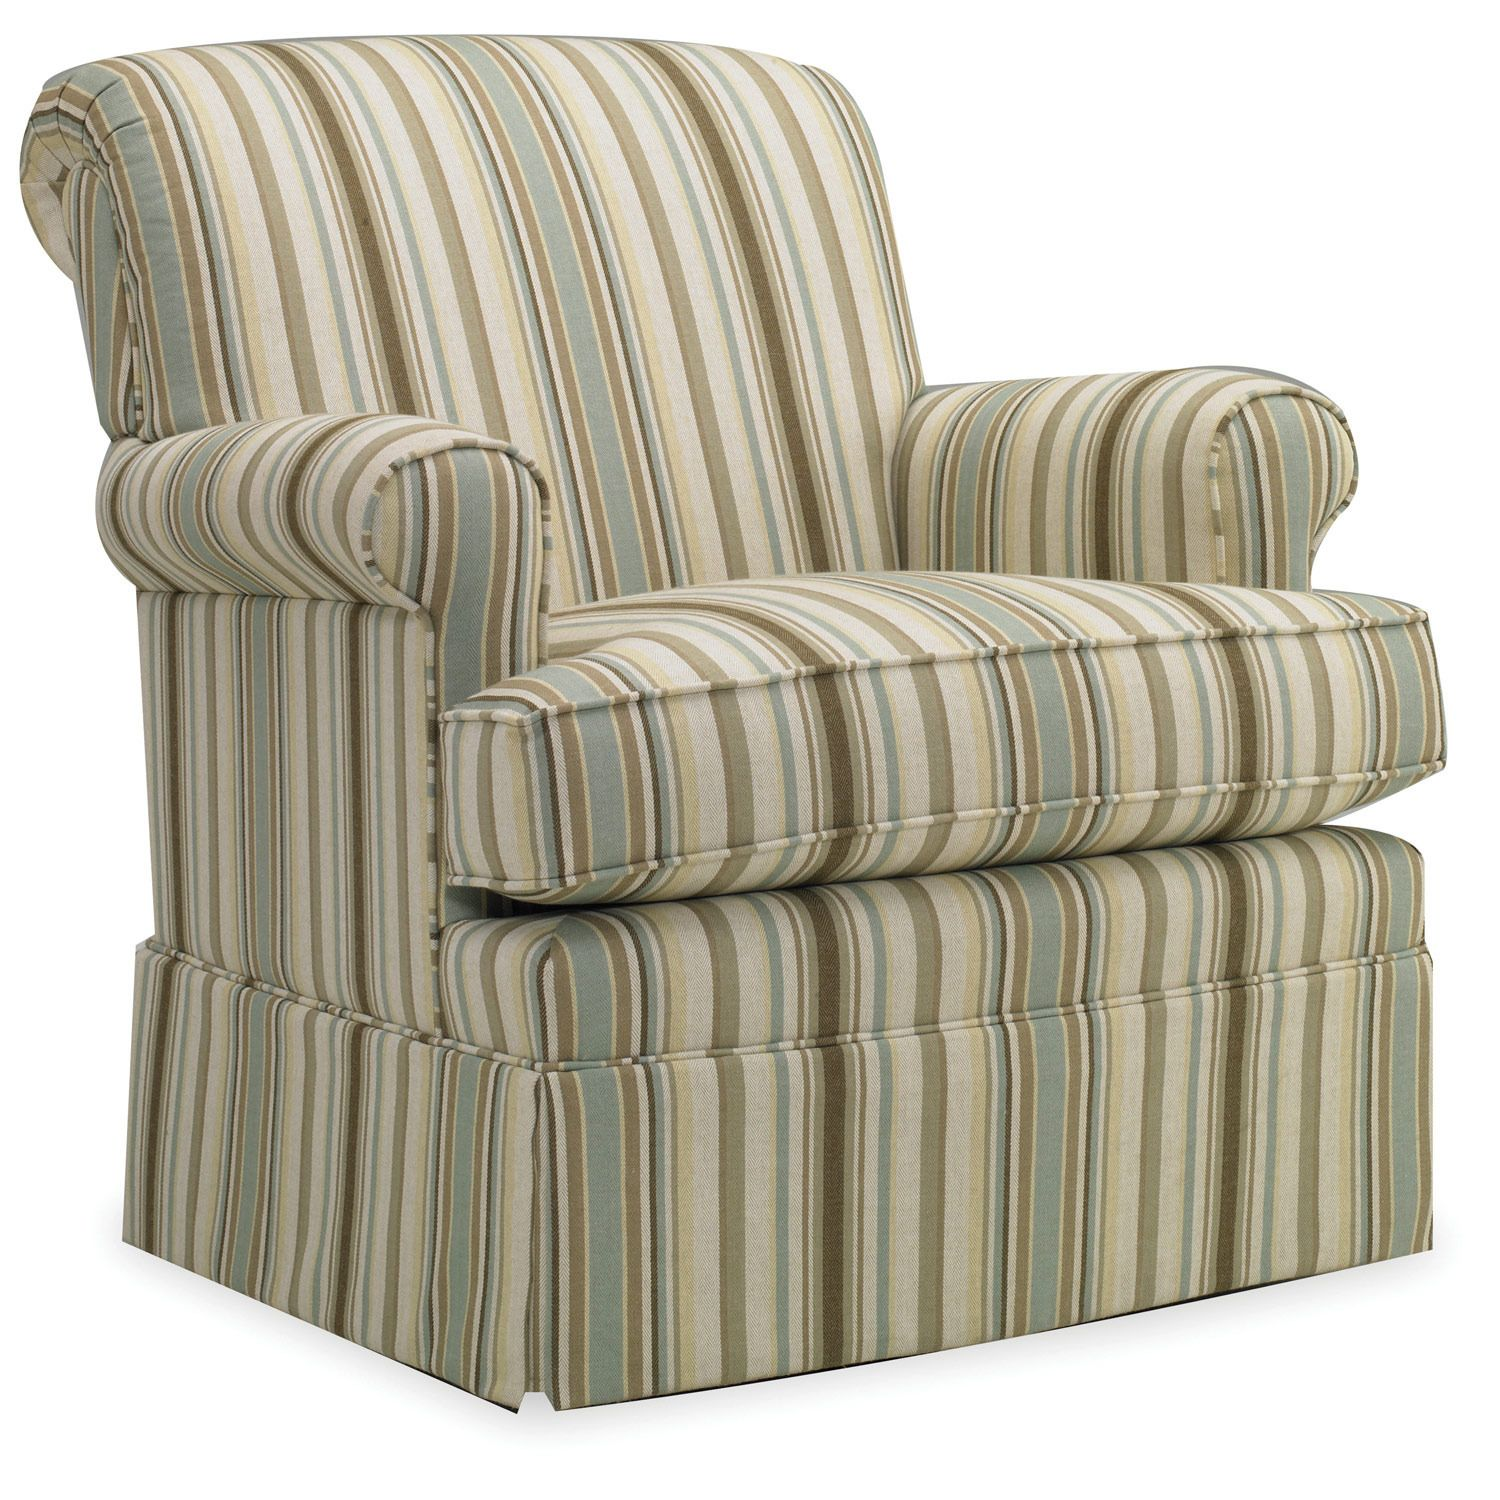 Sessel Gleiter Thames Swivel Glider Sam Moore Furniture Home Gallery Stores